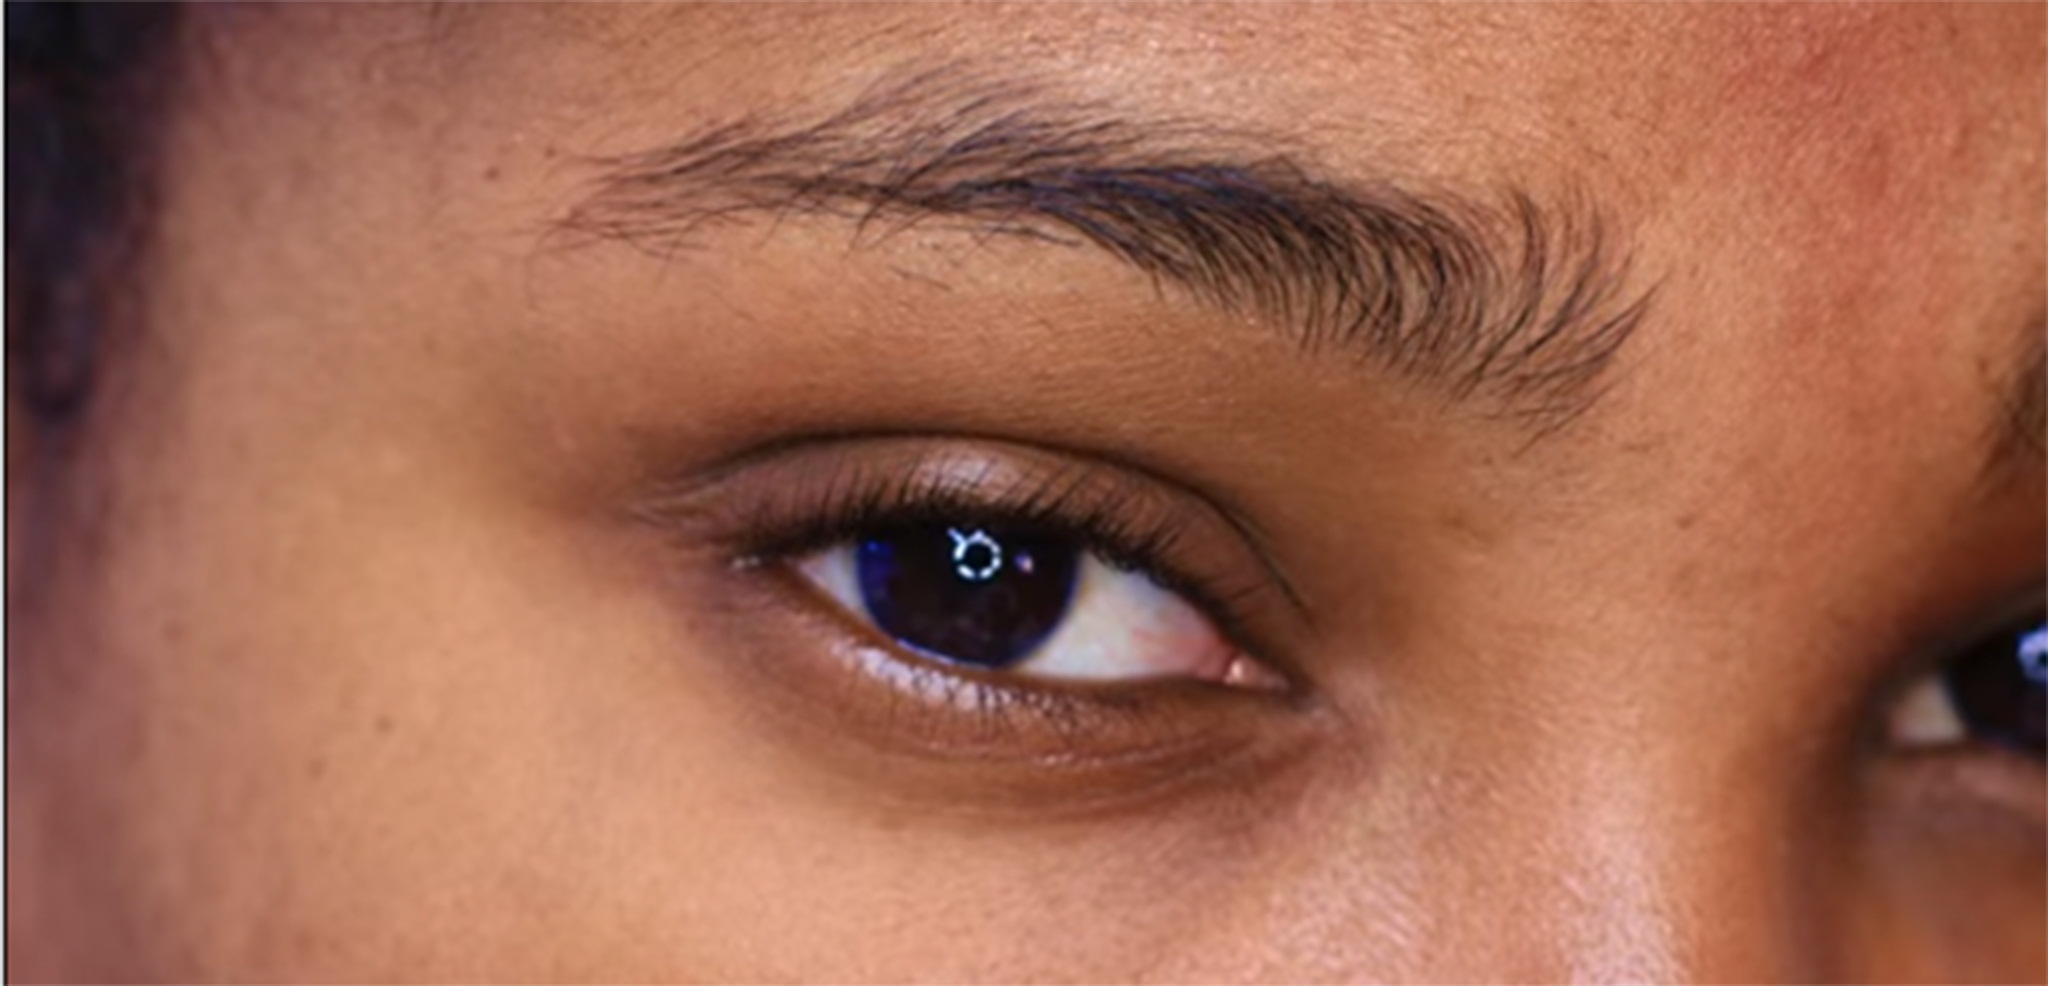 Bad shaped eye brows look nasty and spoil look what is the solution to get them shaped without pain